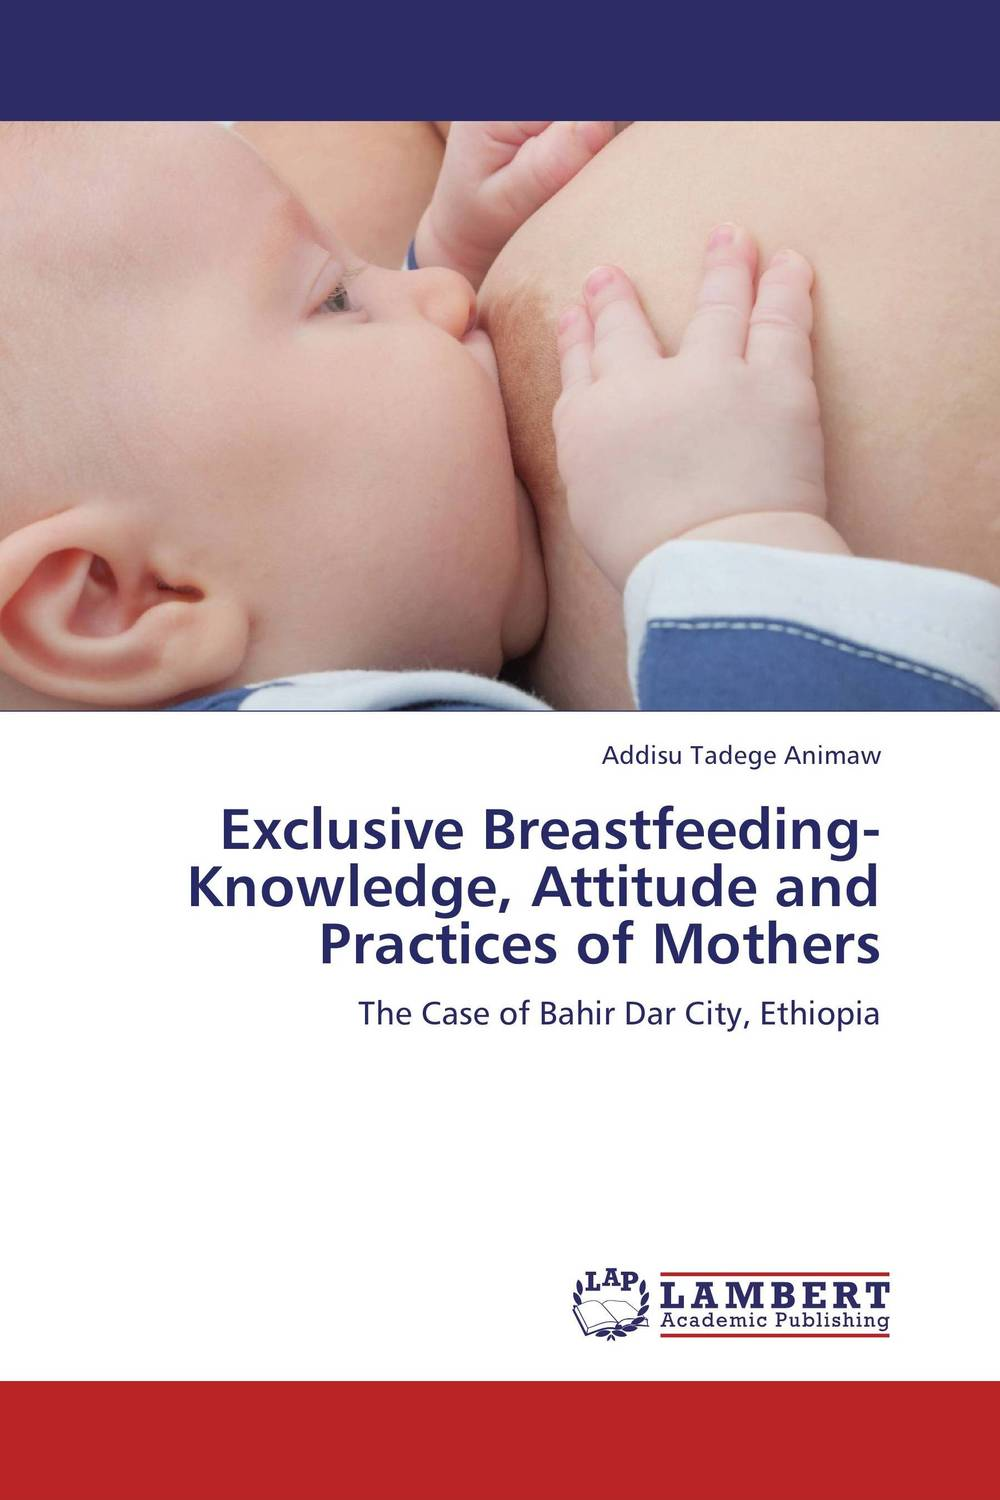 Exclusive Breastfeeding-Knowledge, Attitude and Practices of Mothers breastfeeding knowledge in dhaka bangladesh